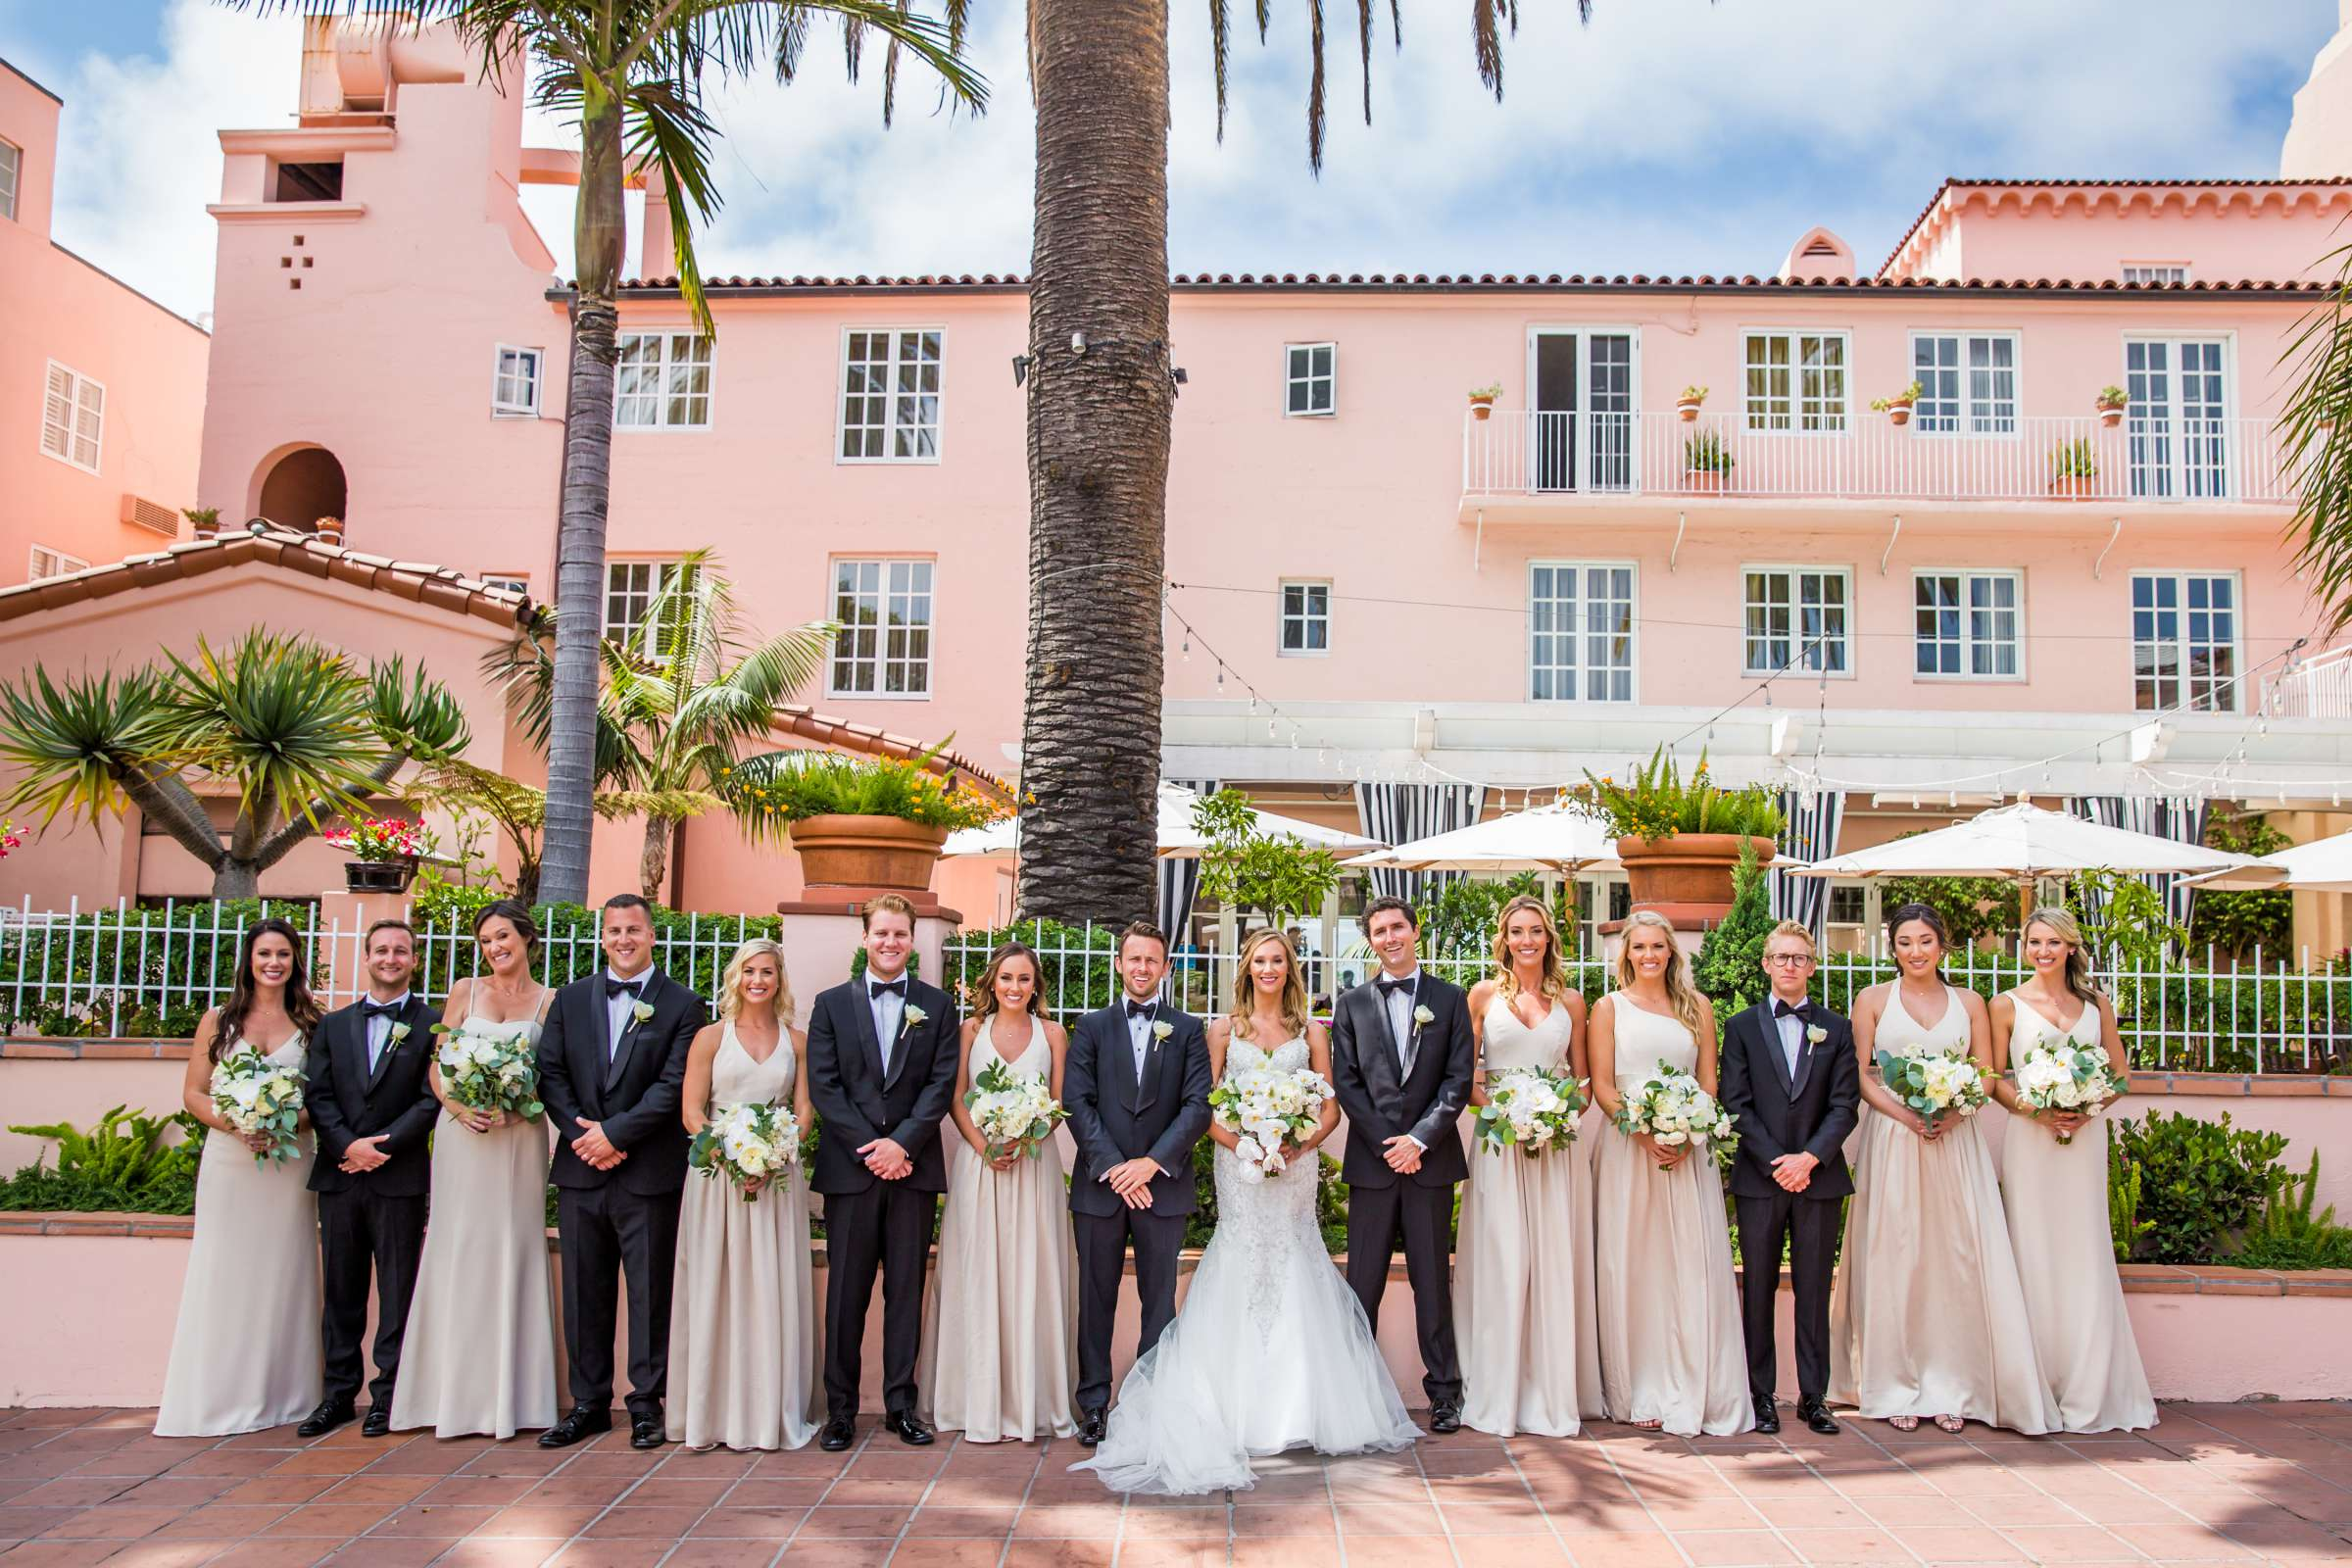 La Valencia Wedding coordinated by First Comes Love Weddings & Events, Jaimarie and Branden Wedding Photo #8 by True Photography